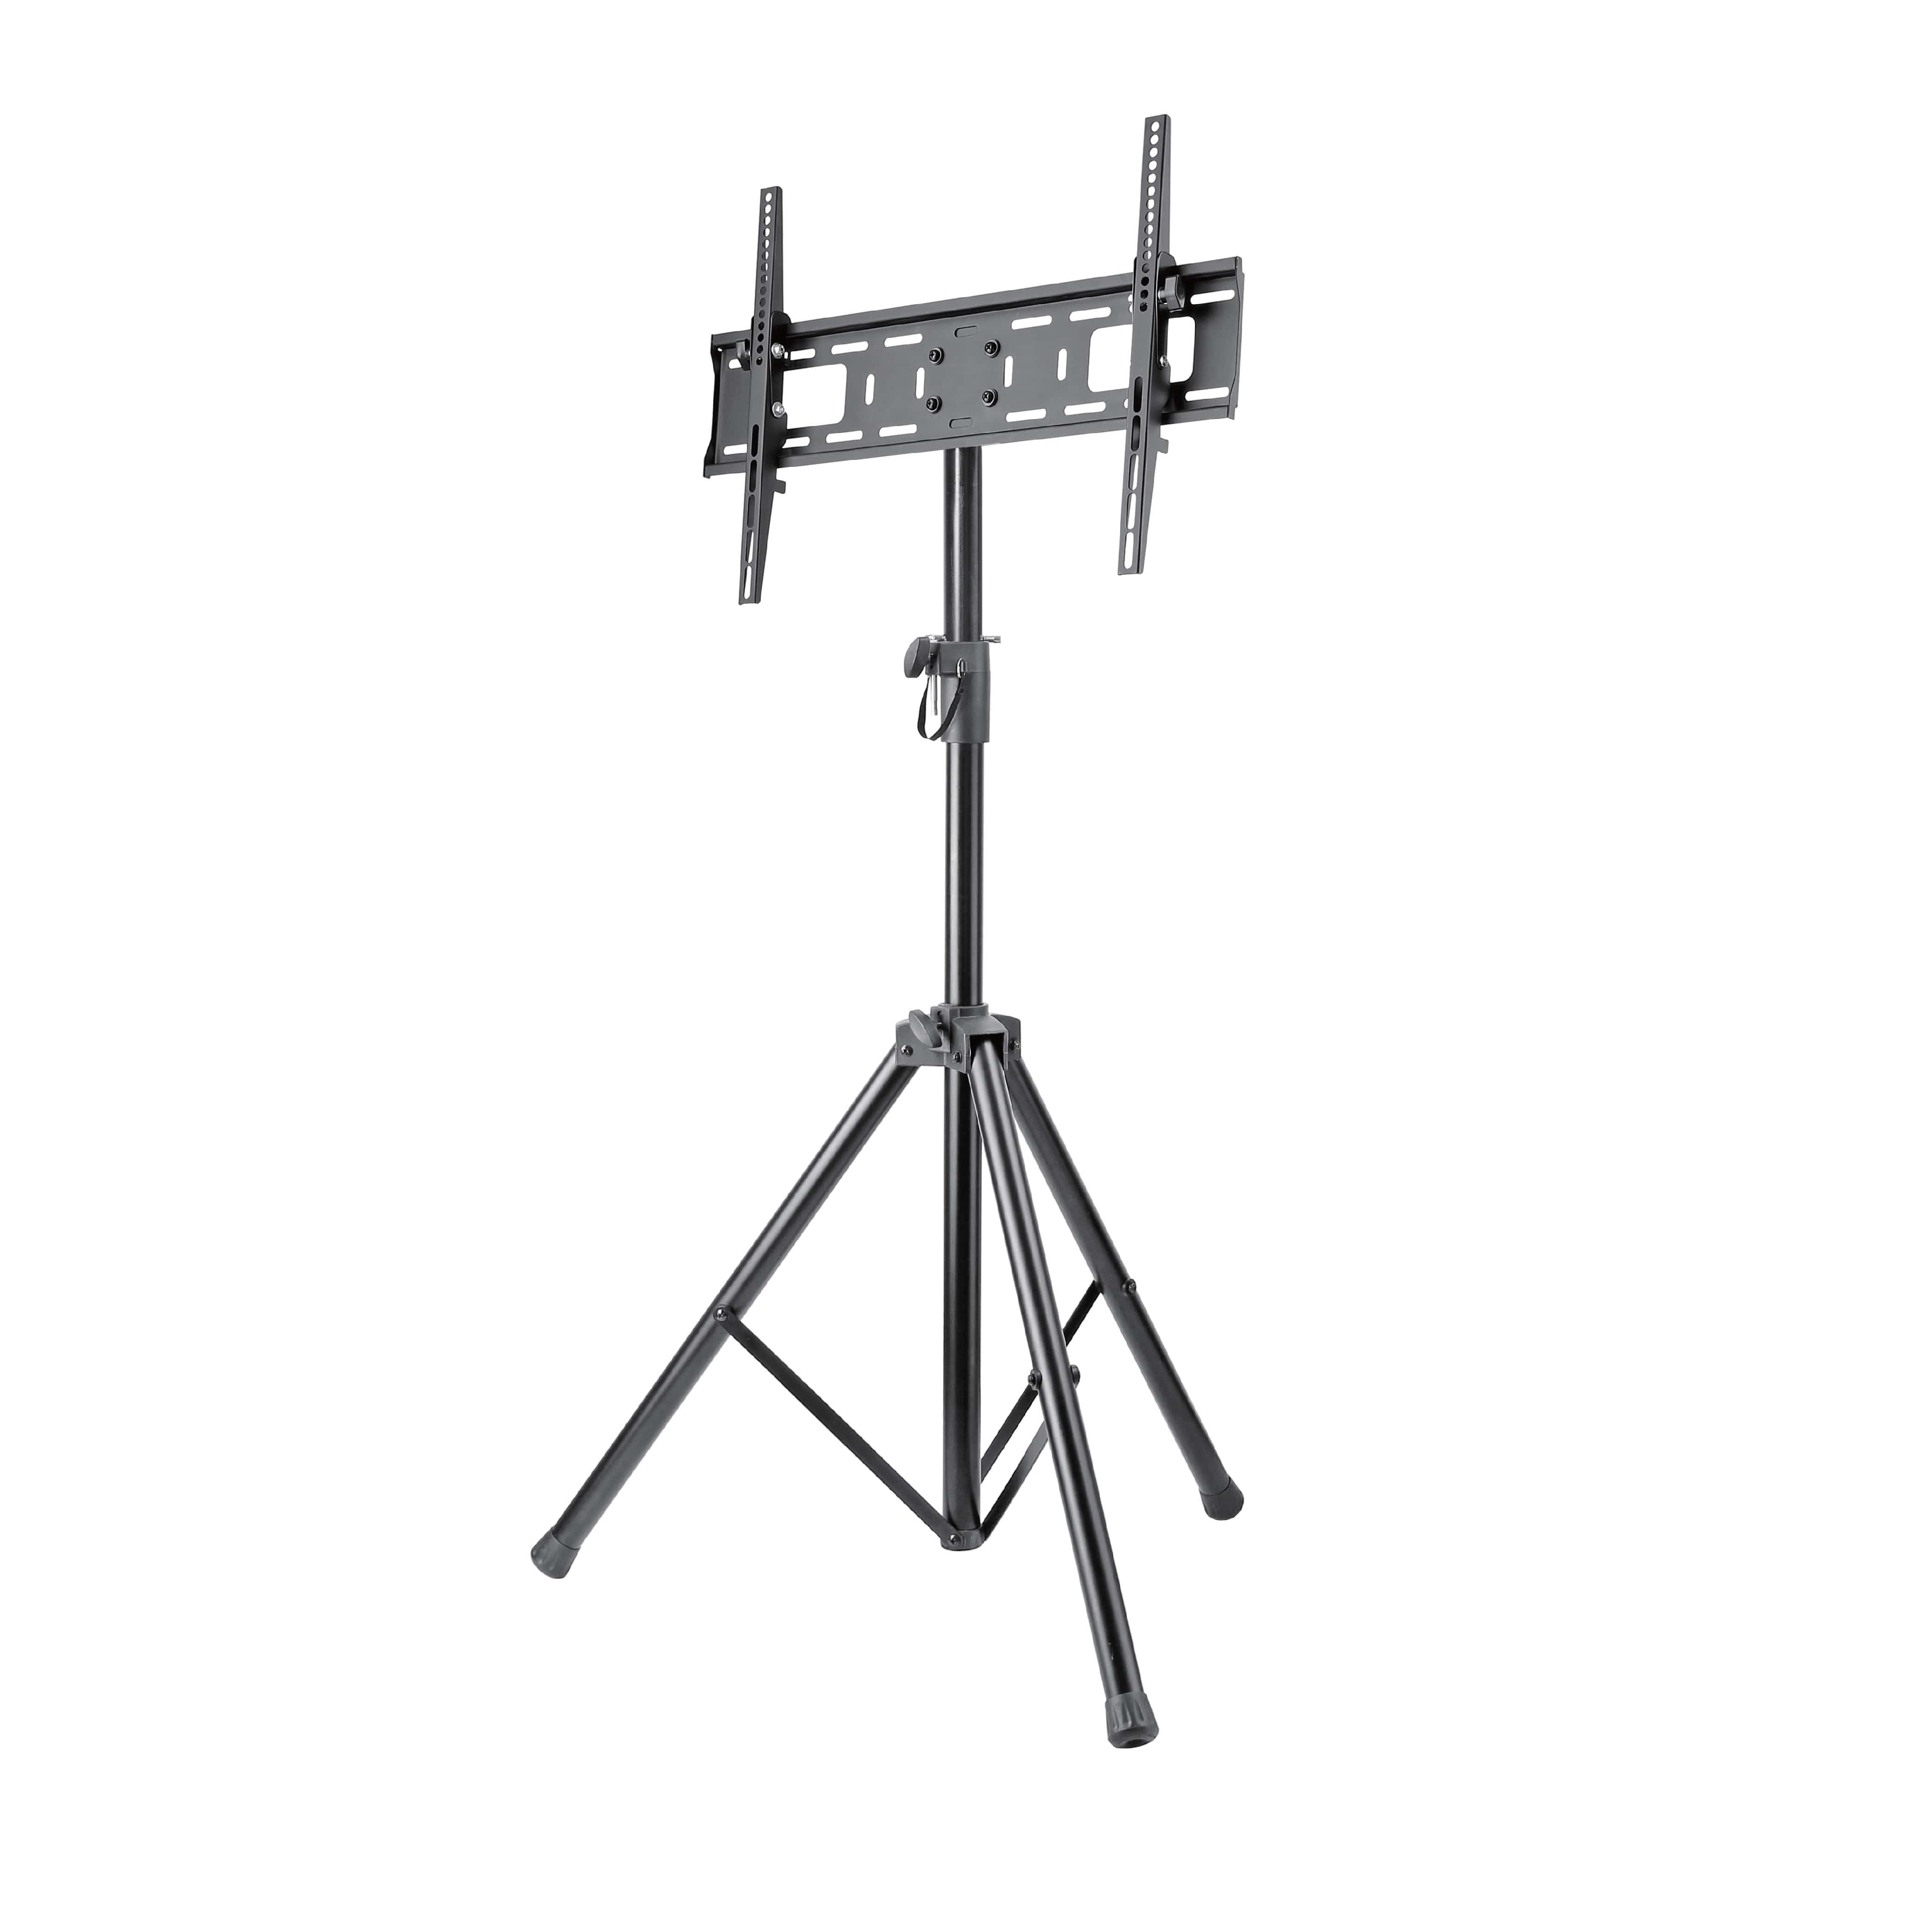 37″ to 70″ Portable LED LCD TV Tripod Stand FS08-46T | True Vision Philippines